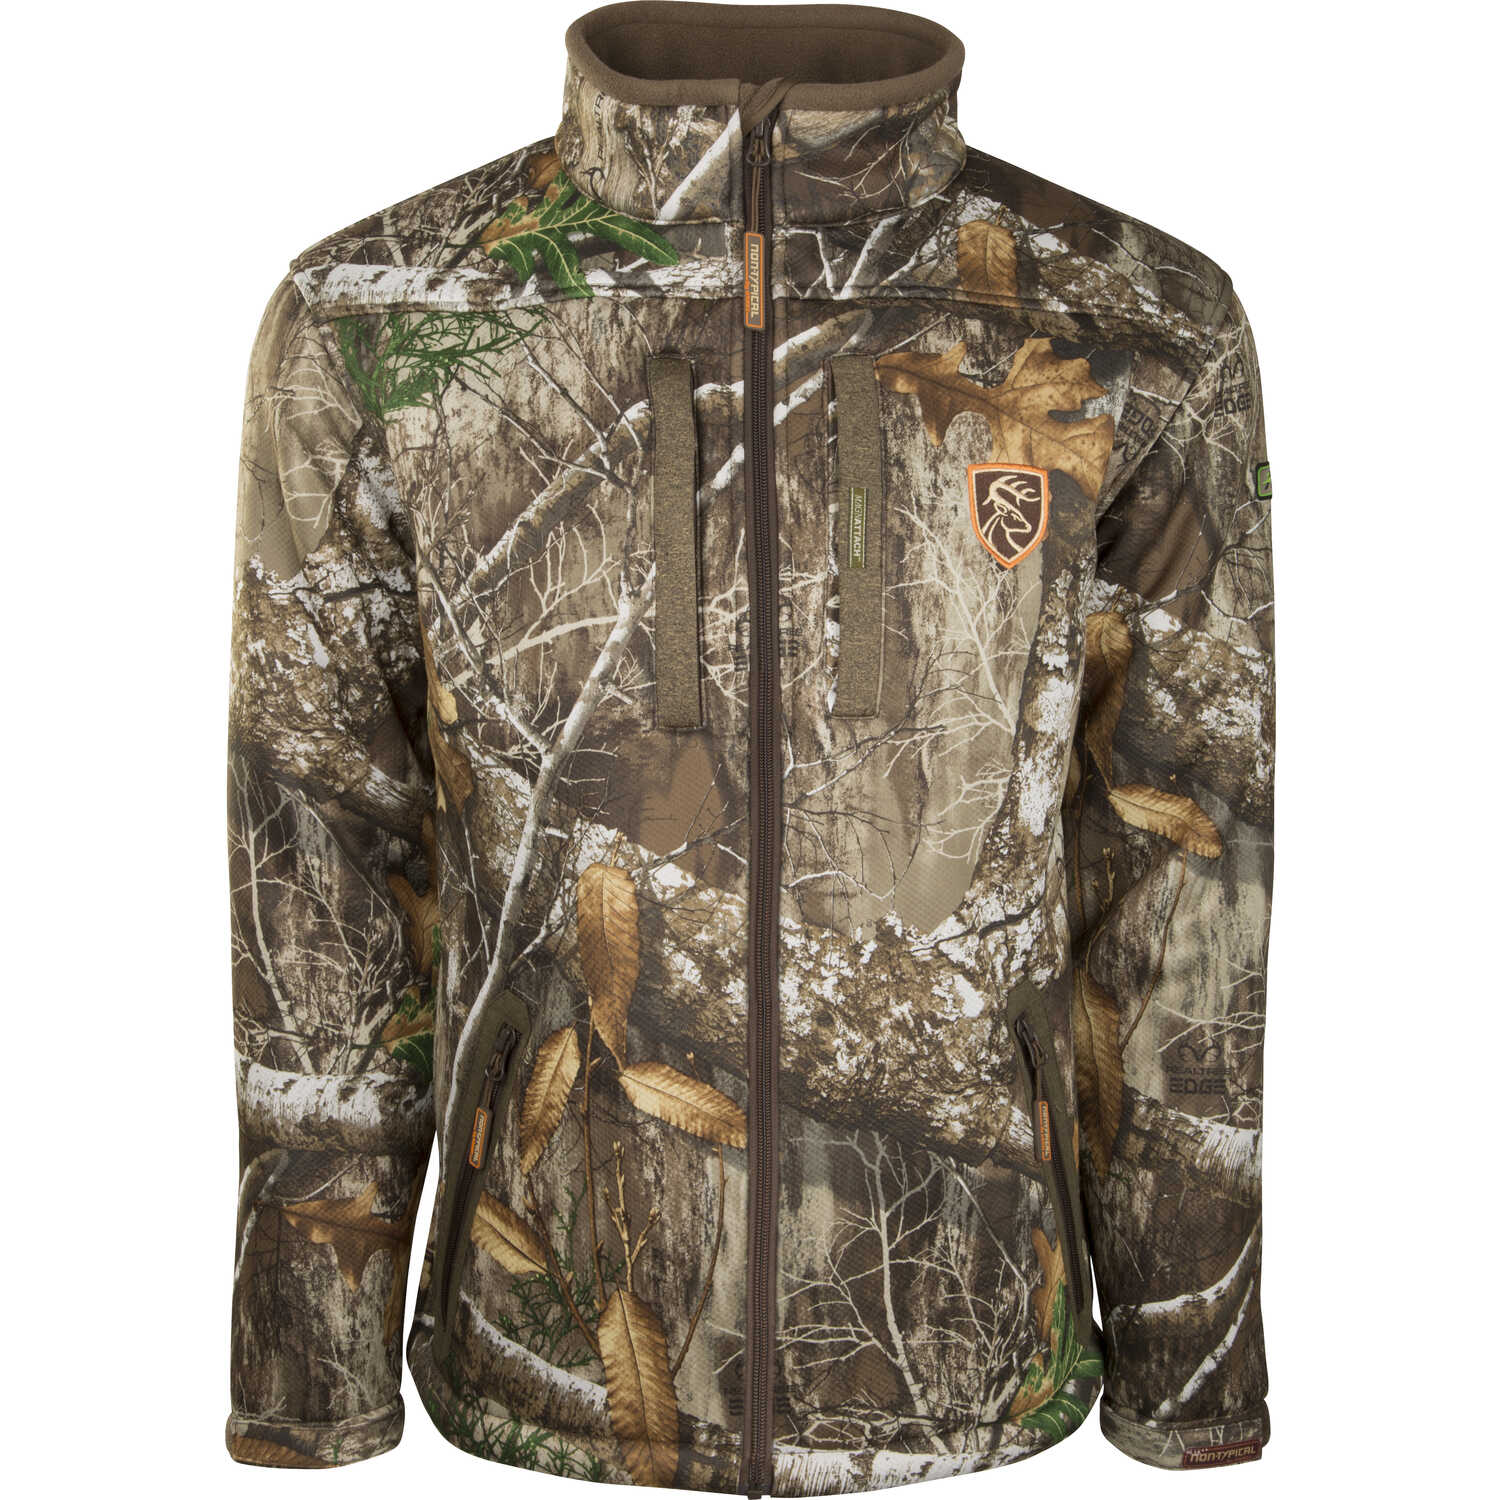 Drake  Silencer  Medium  Men's  Long Sleeve  Full-Zip  Realtree Edge  Jacket